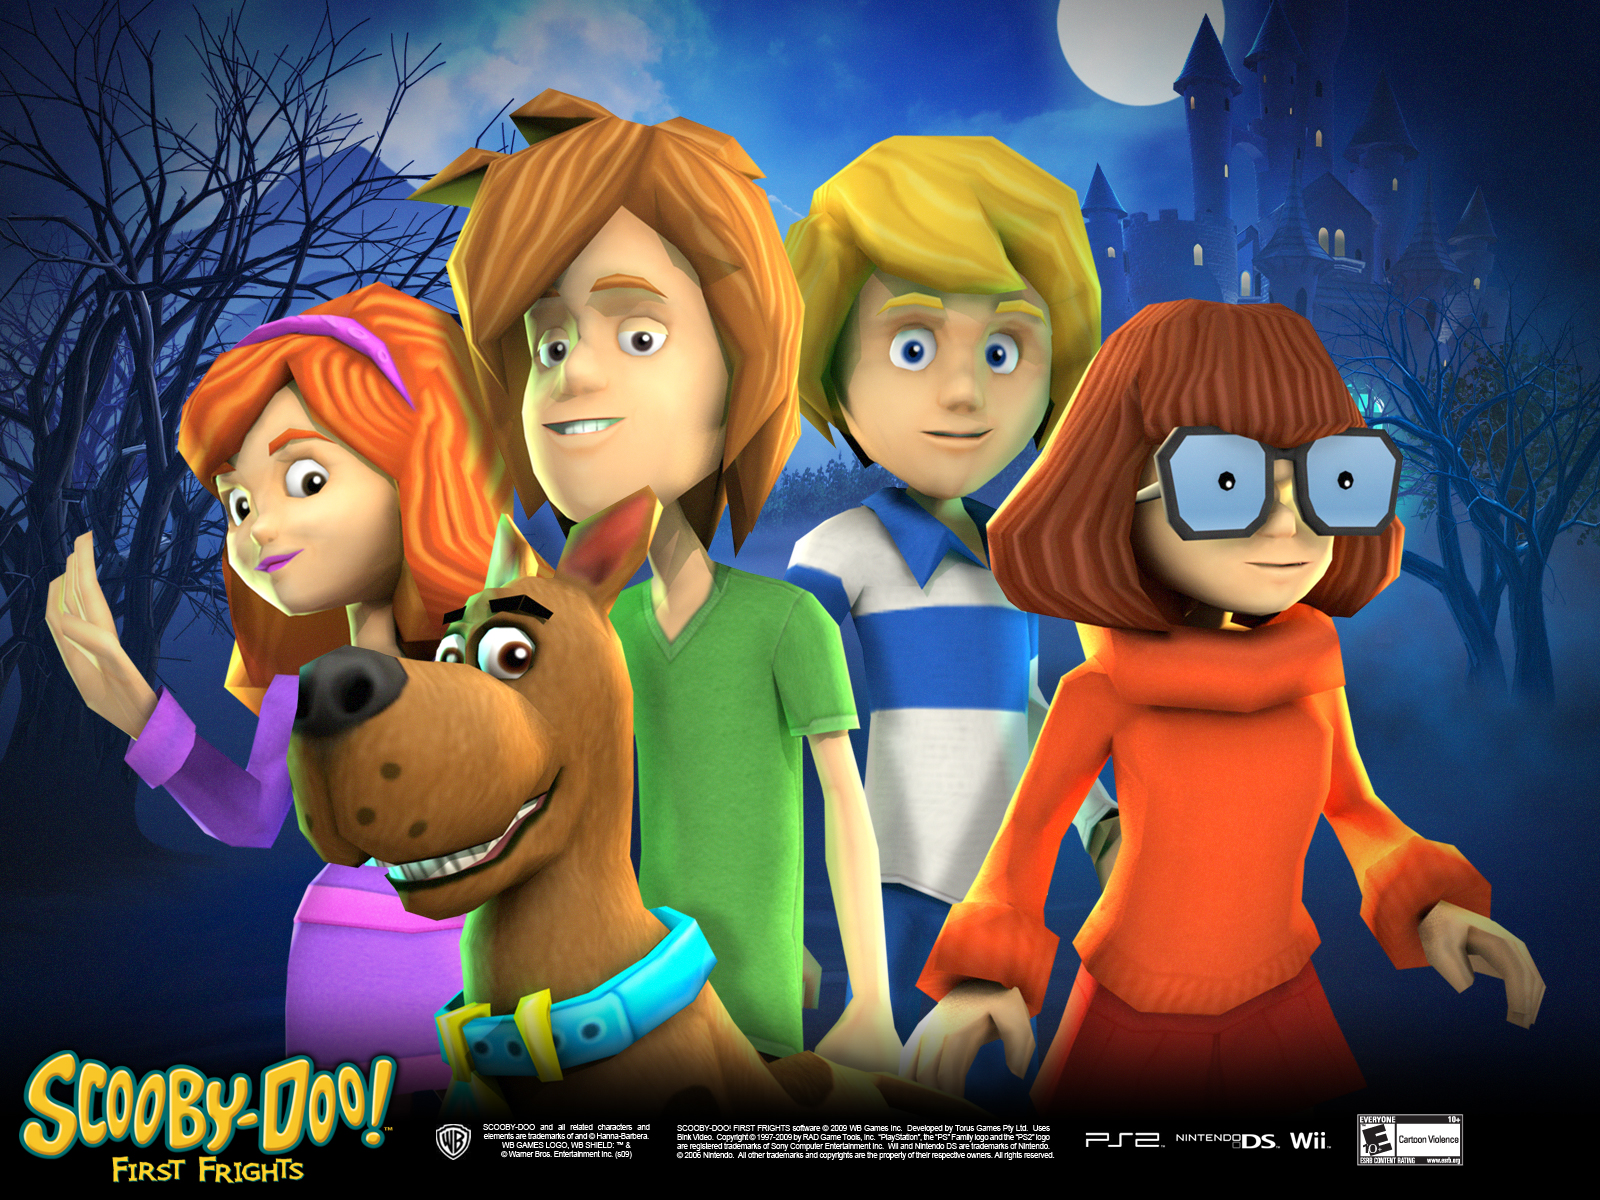 Scooby Doo First Frights Scooby Doo Wallpaper 31849623